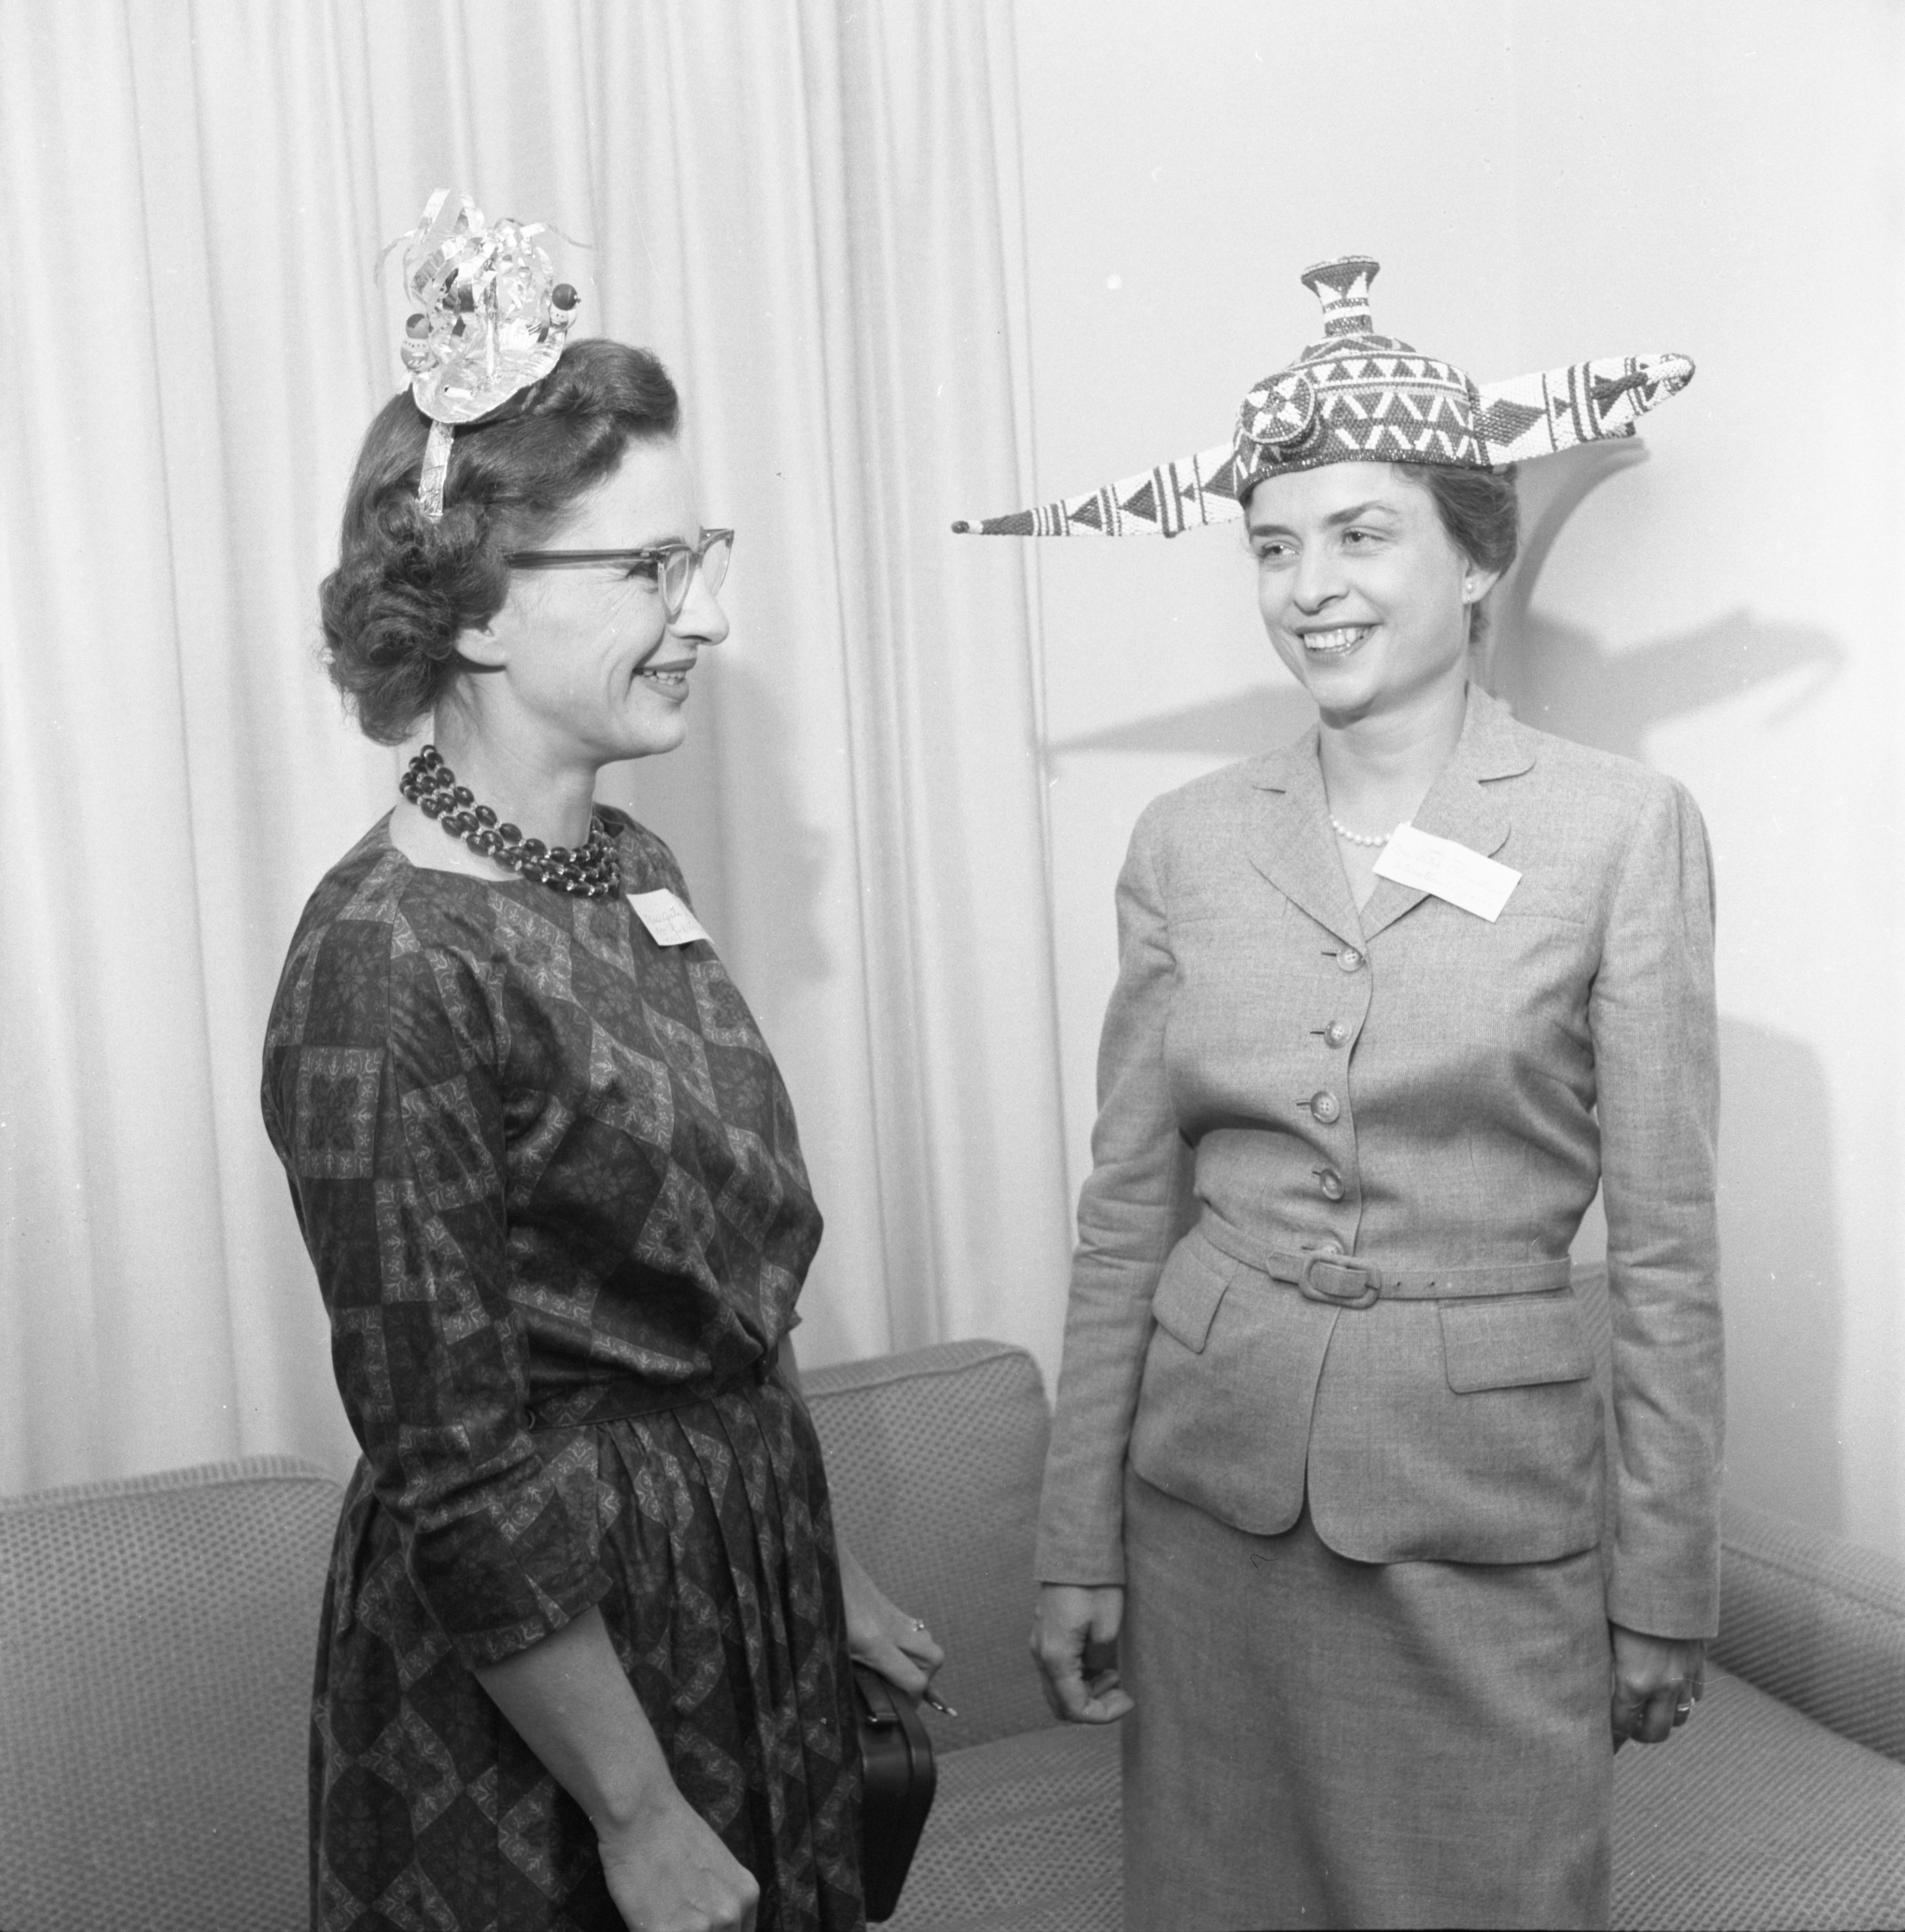 League Of Women Voters Wear Hats Related To Study Group Subjects, September 1959 image